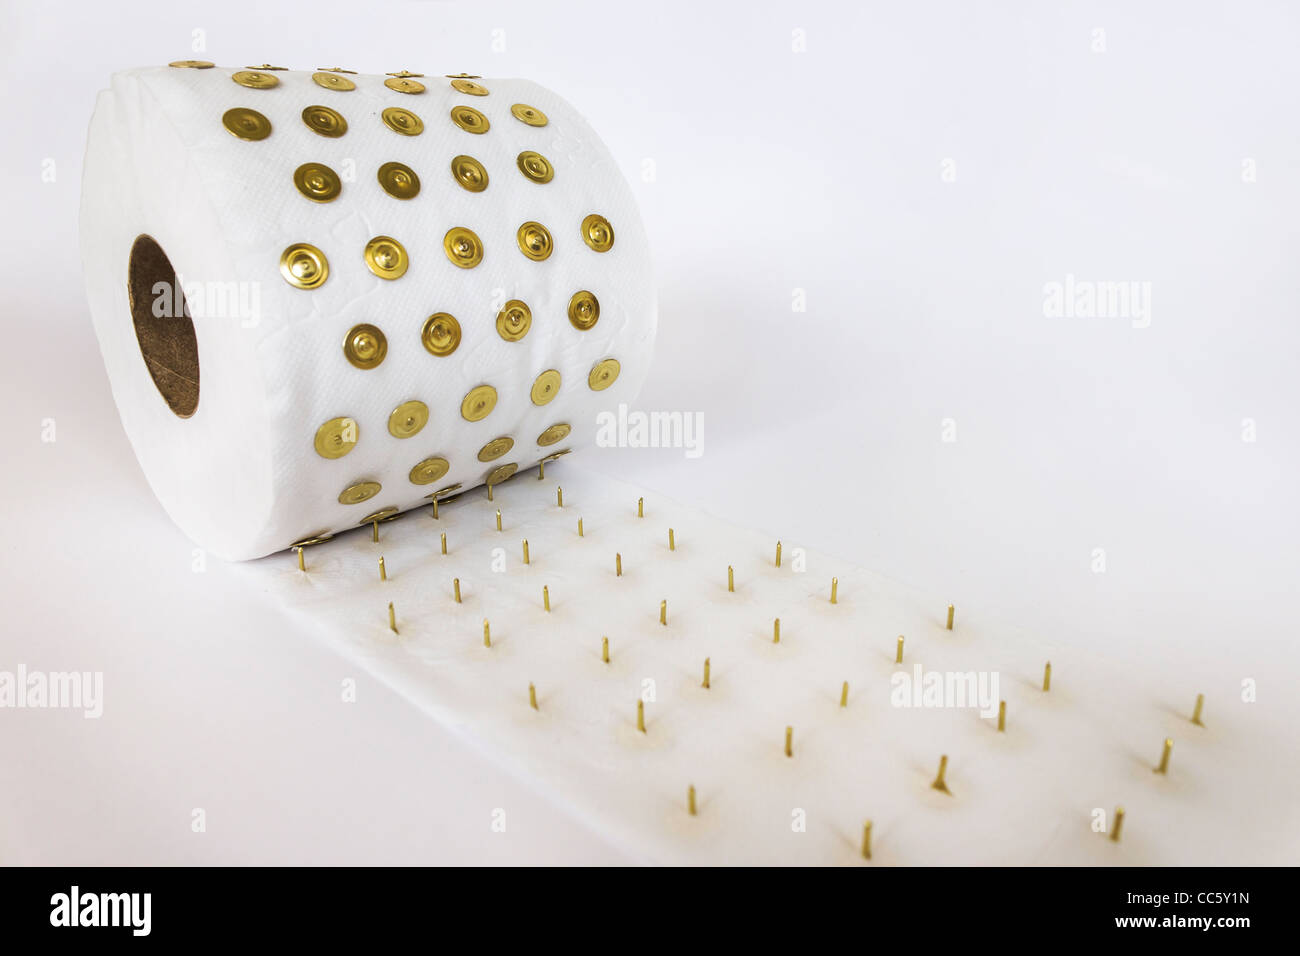 a roll of toilet paper pierced by thumbtacks with white background